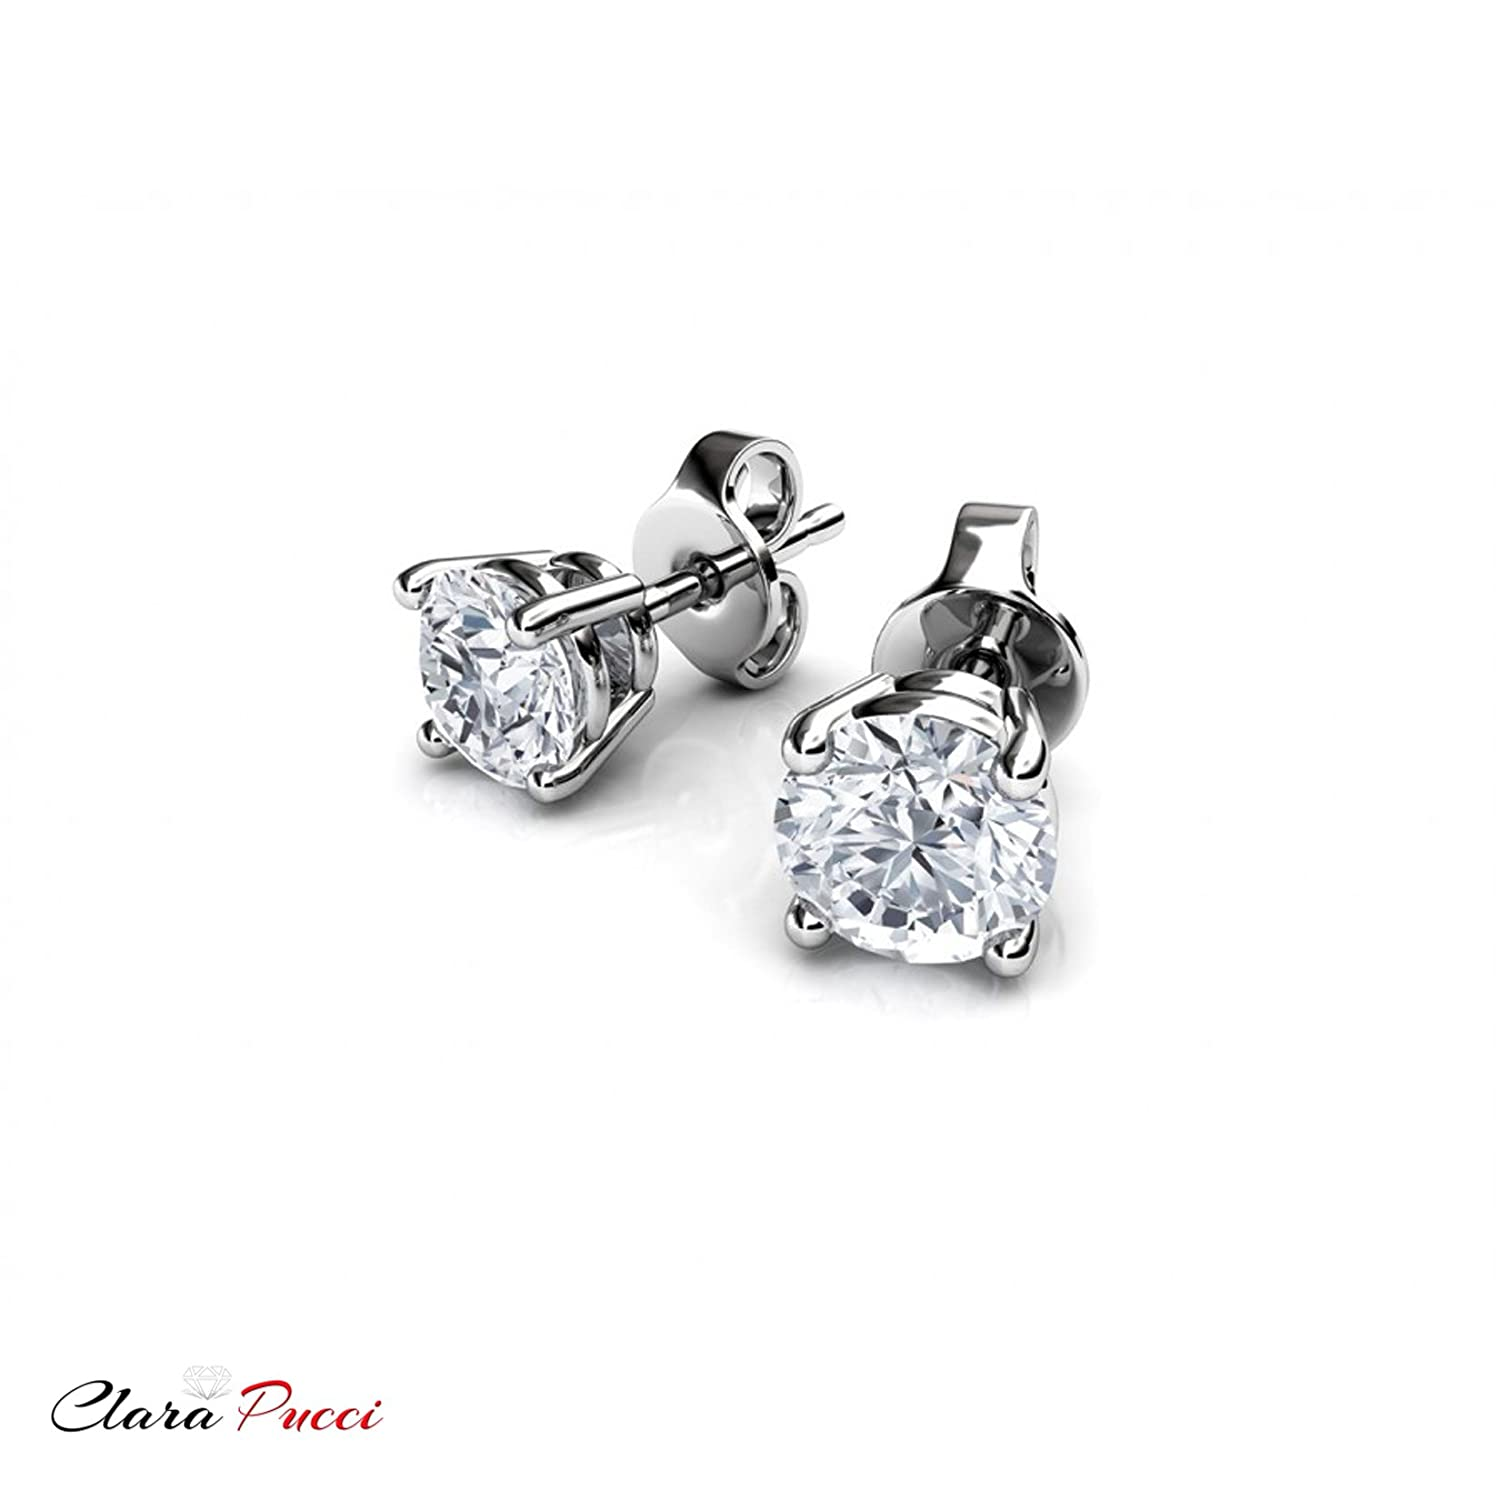 Clara Pucci 1.80 CT Round Brilliant Cut CZ Solitaire Stud Earrings in 14k White Gold Push Back